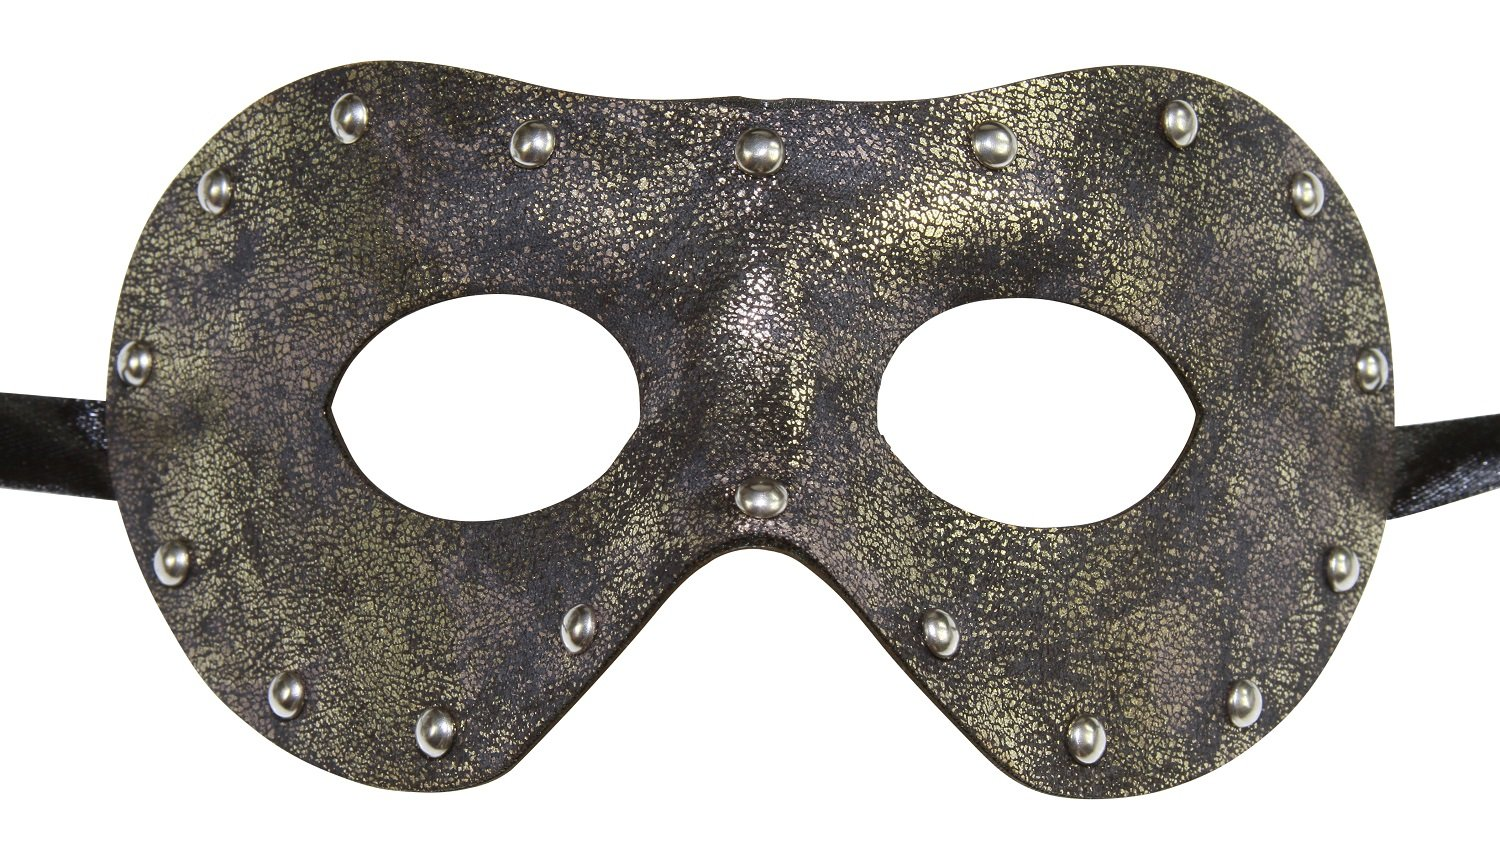 KAYSO INC Men's Leather Masquerade Mask (Rustic Gray)